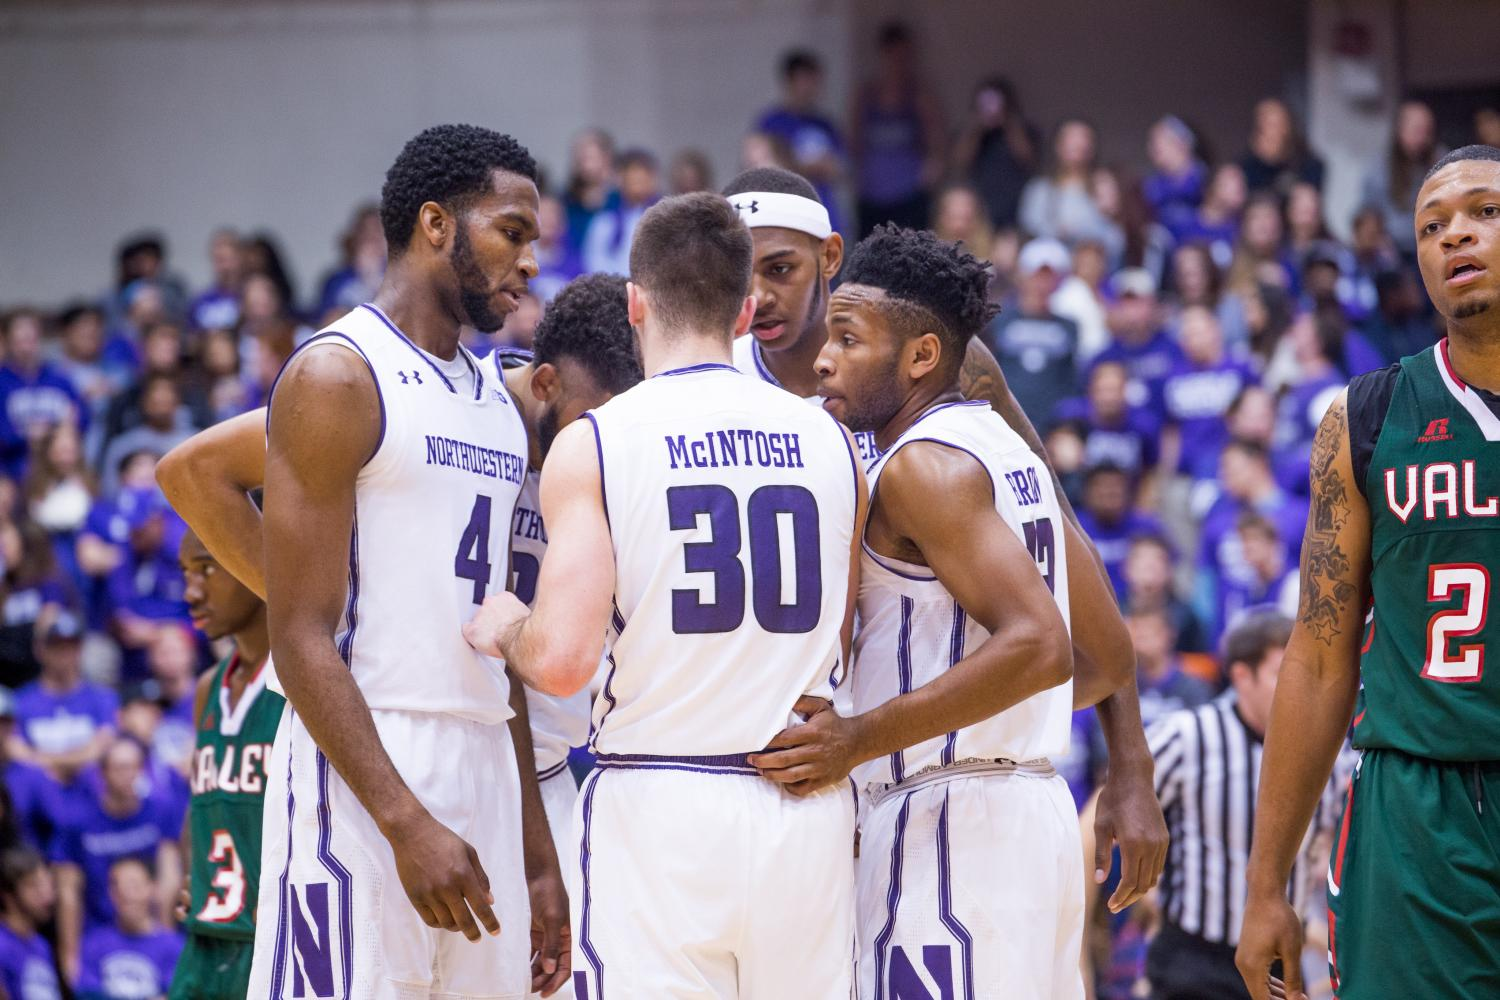 Northwestern+players+huddle+during+a+non-conference+game+last+year.+The+Cats%27+full+non-conference+schedule+for+this+season+was+released+Thursday.